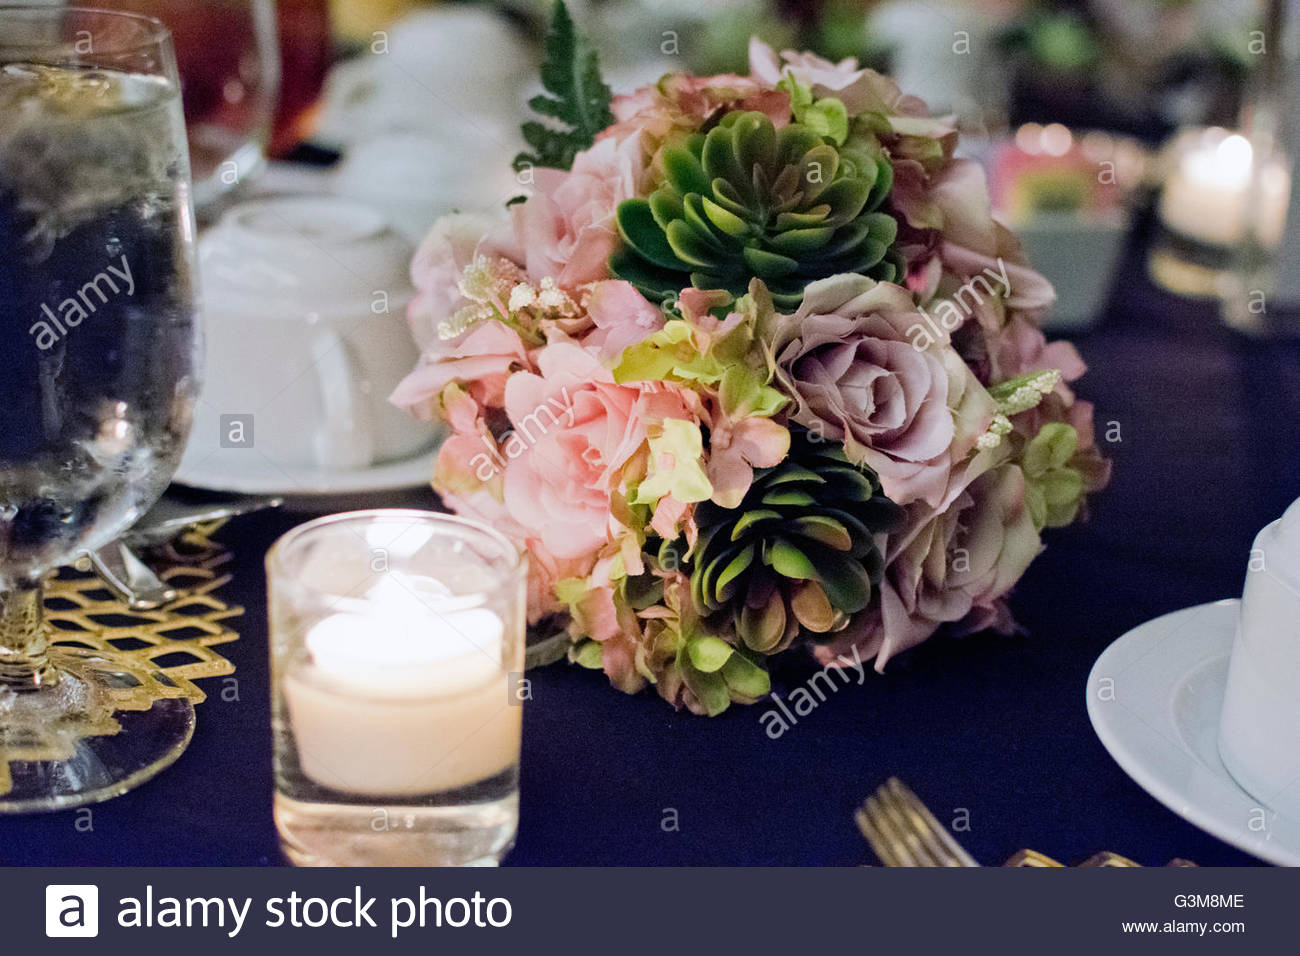 Prepared wedding reception table with flower arrangements and candlelight - Stock Image